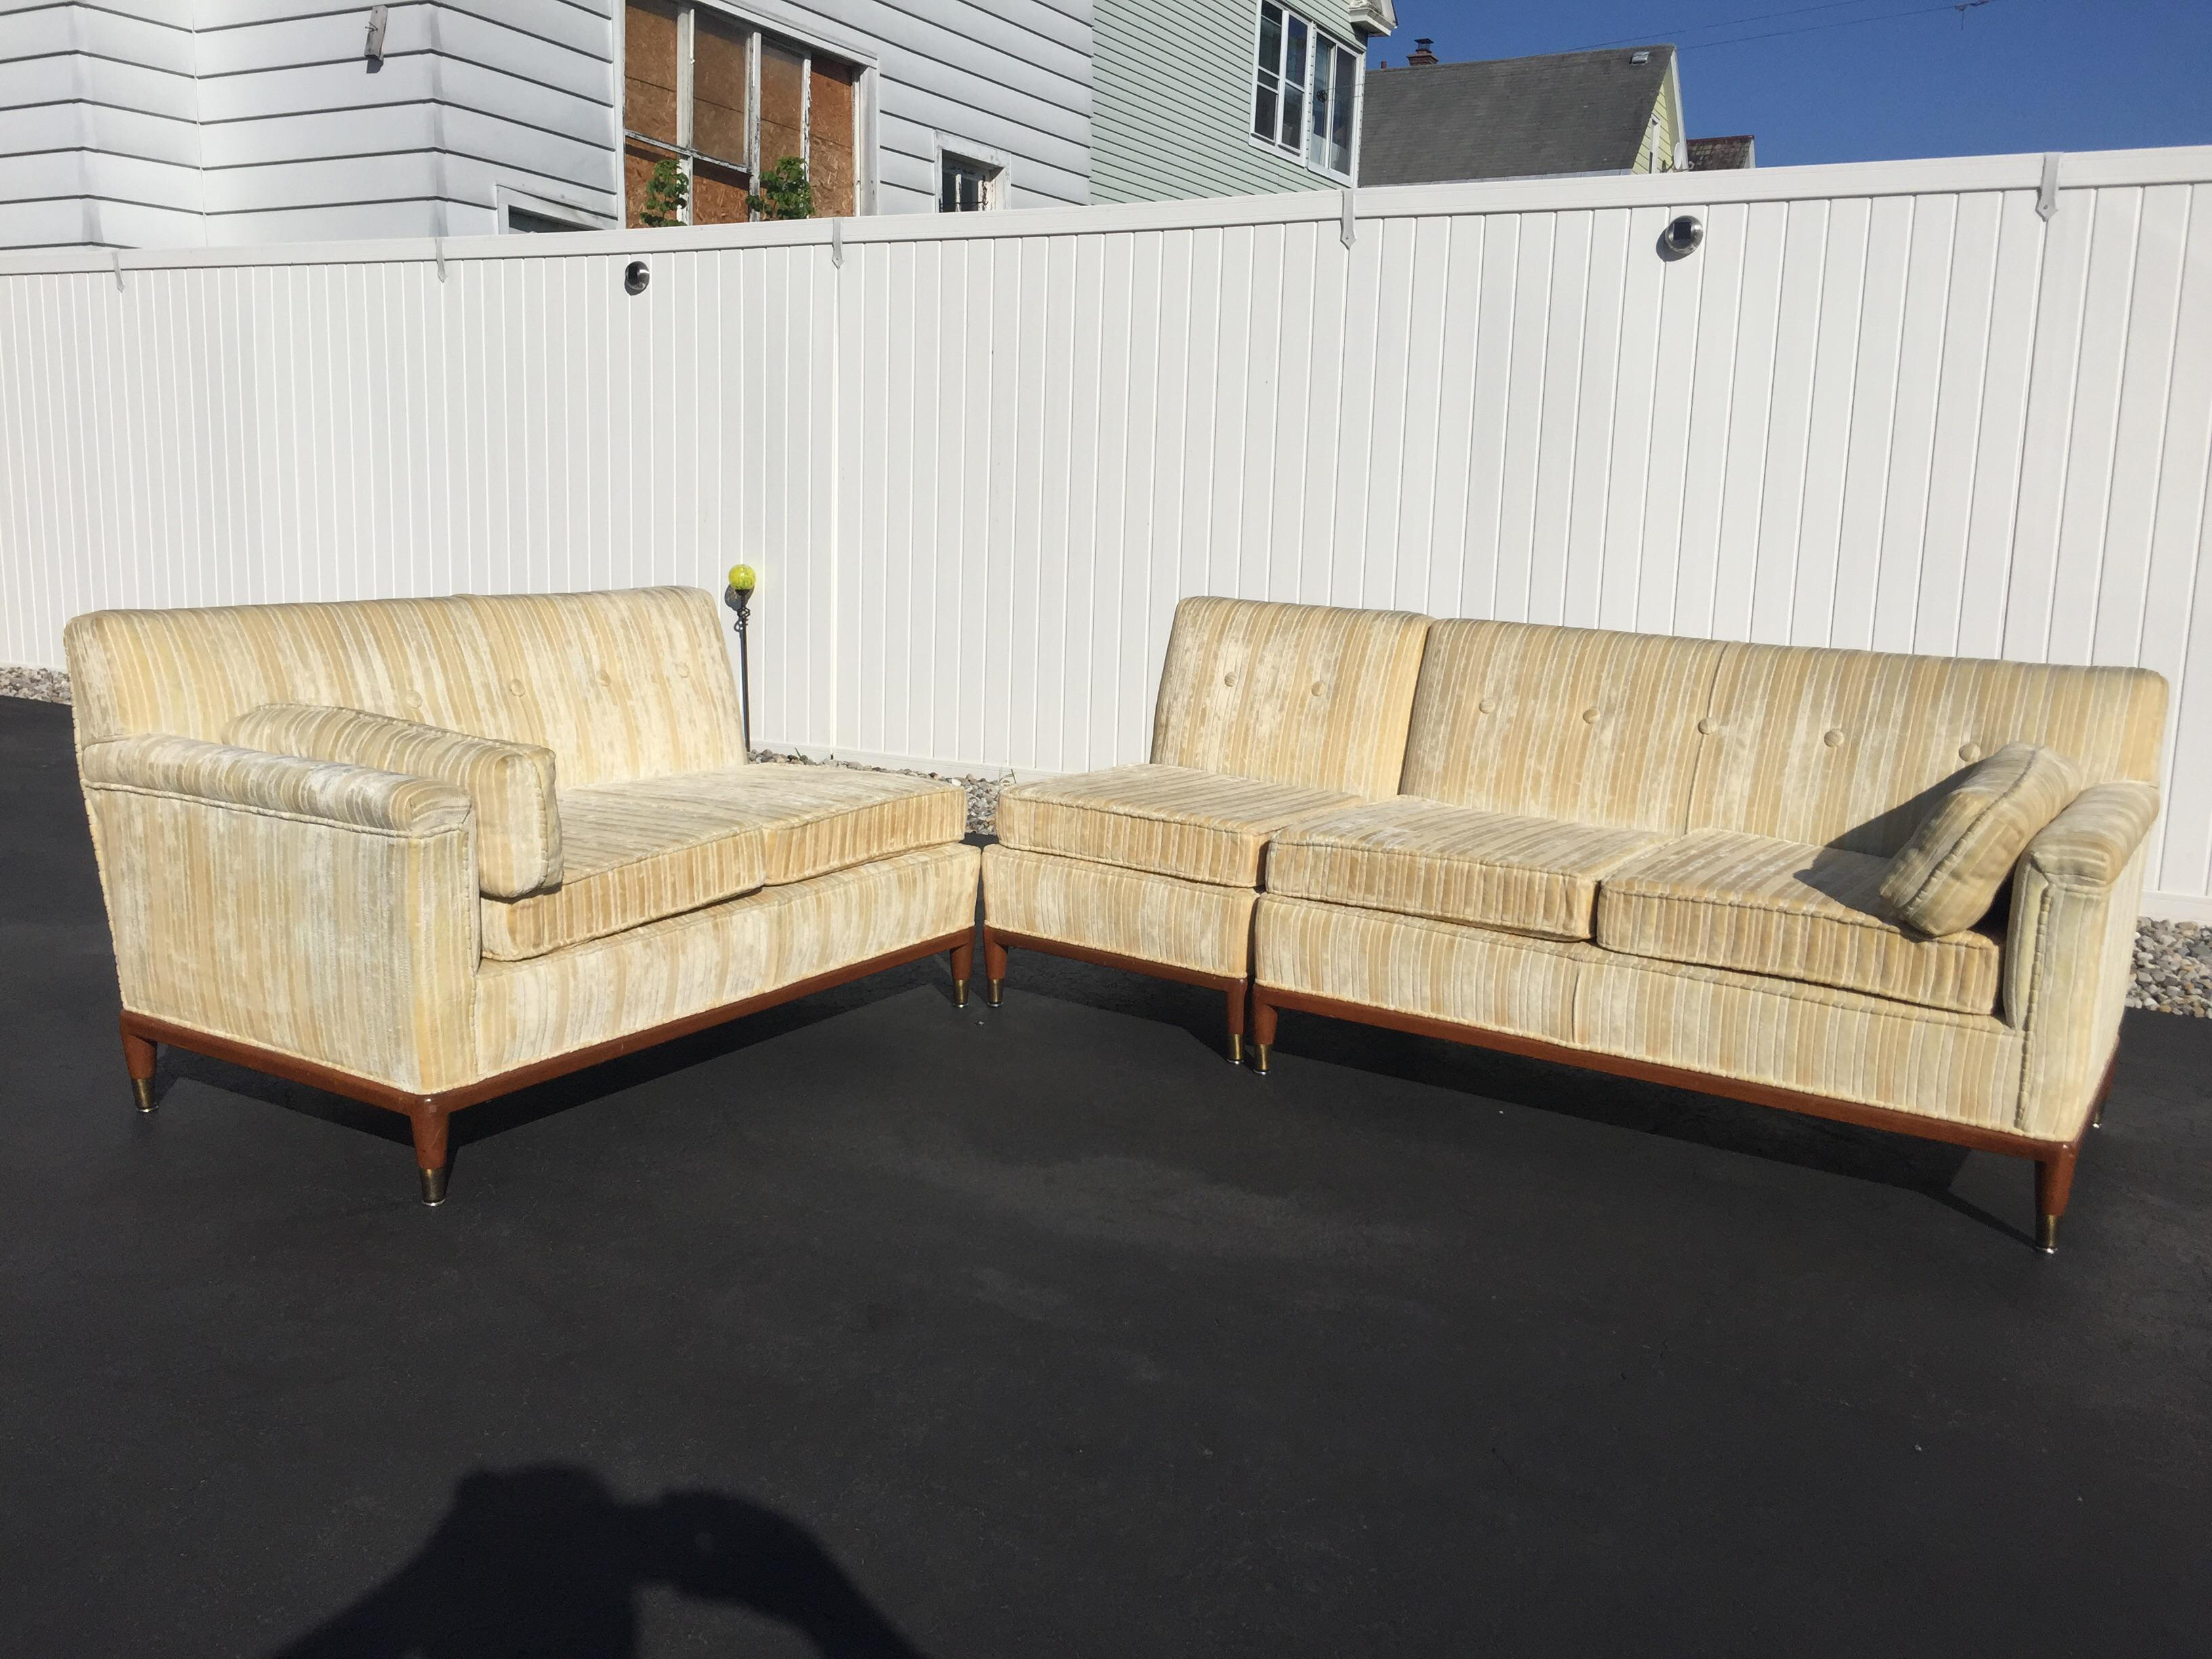 Ordinaire Mid Century Modern Striped Sectional Sofa   Set Of 3   Image 2 Of 11